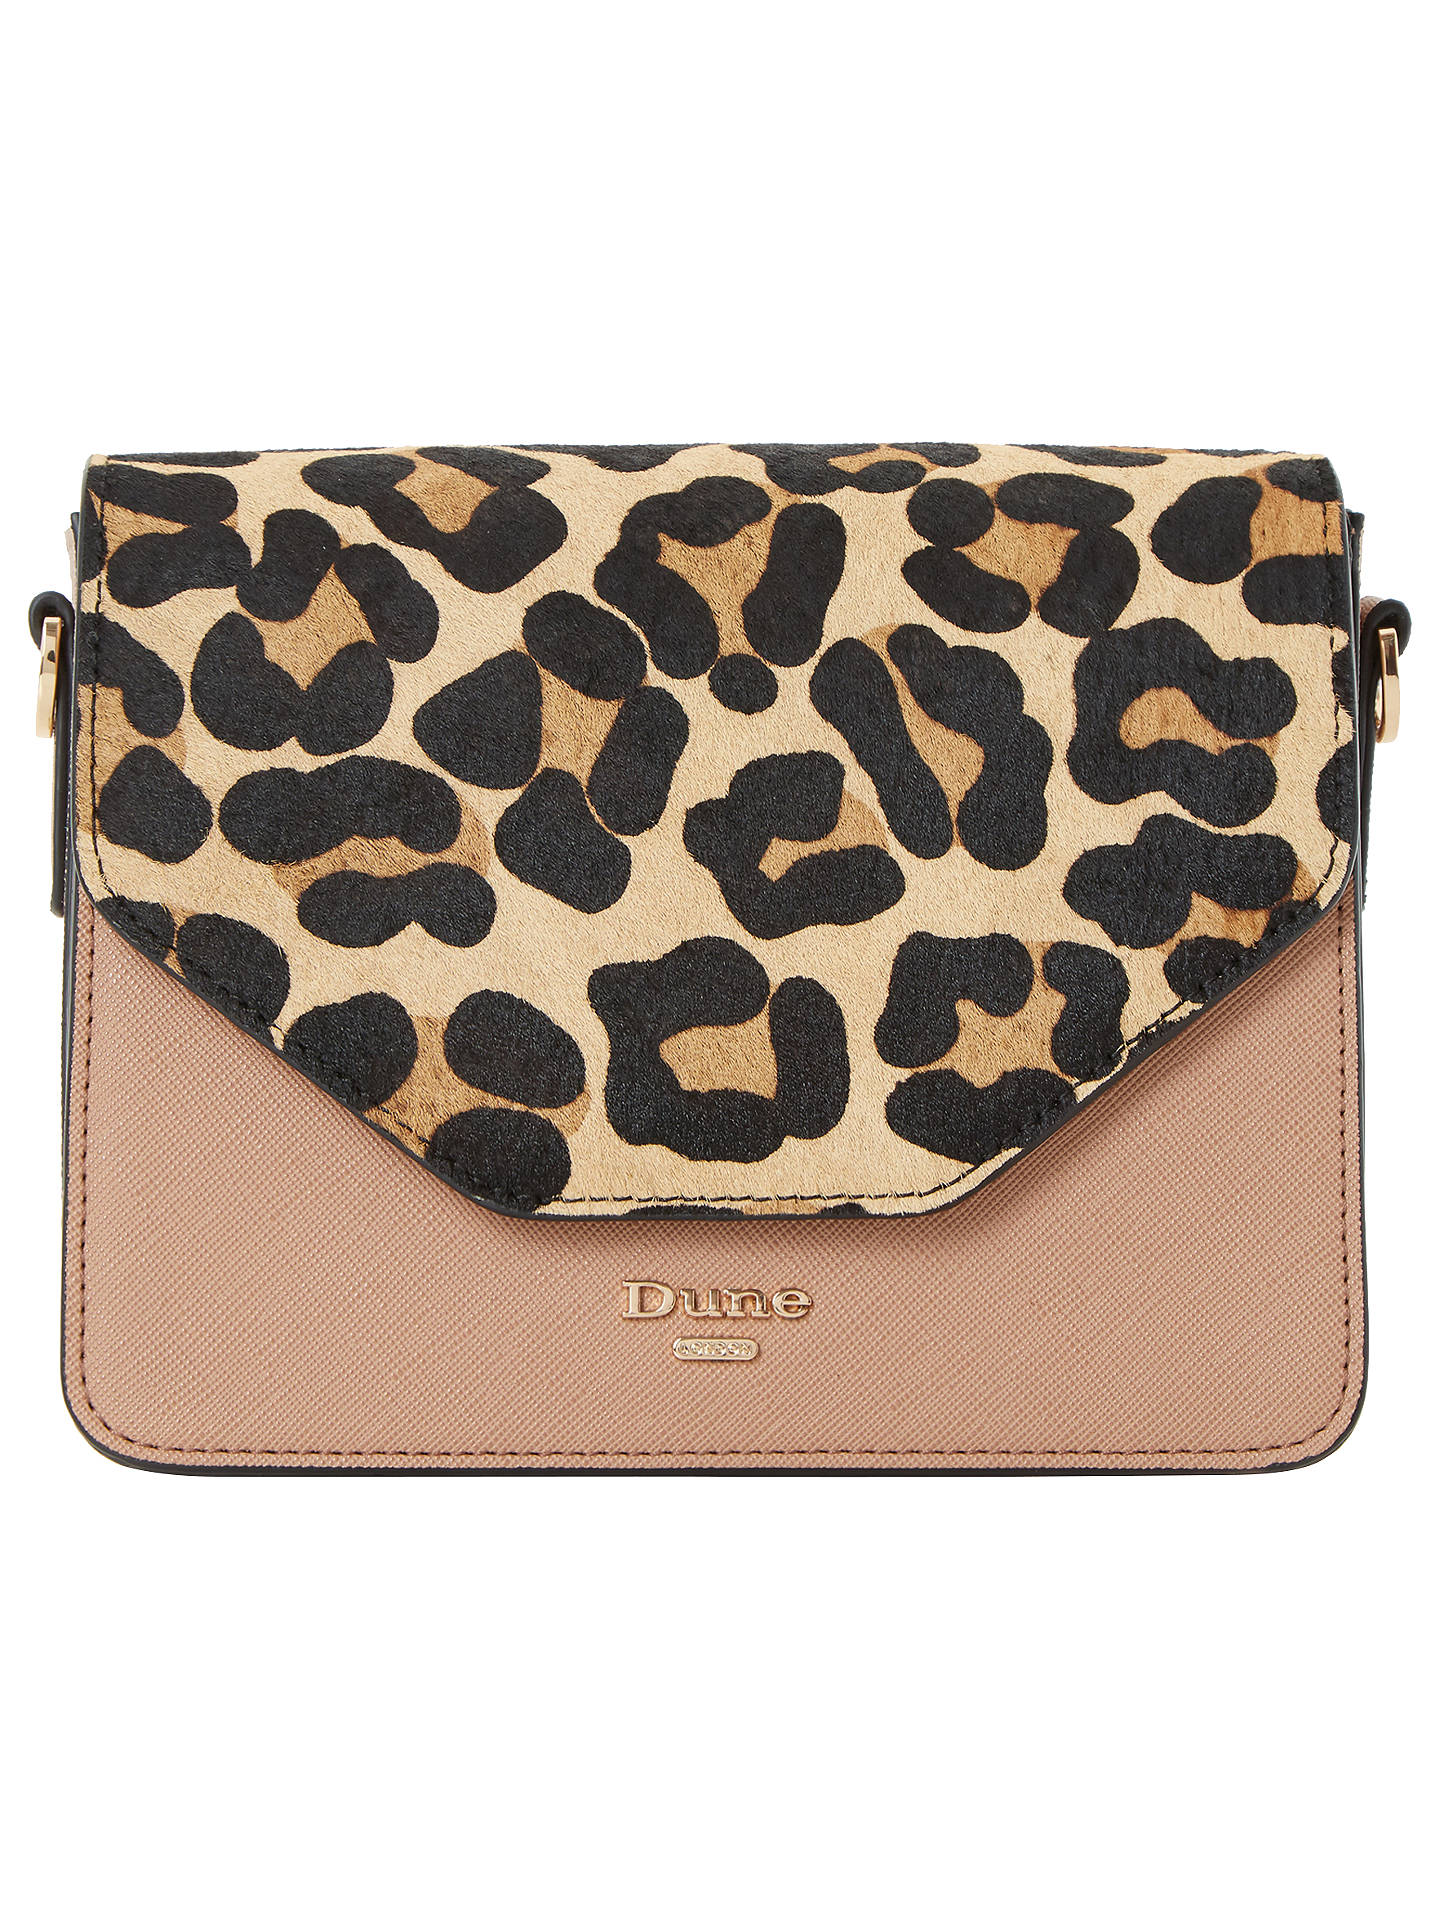 41c1ff2ff406 Buy Dune Etwo Clutch Bag, Leopard Online at johnlewis.com ...